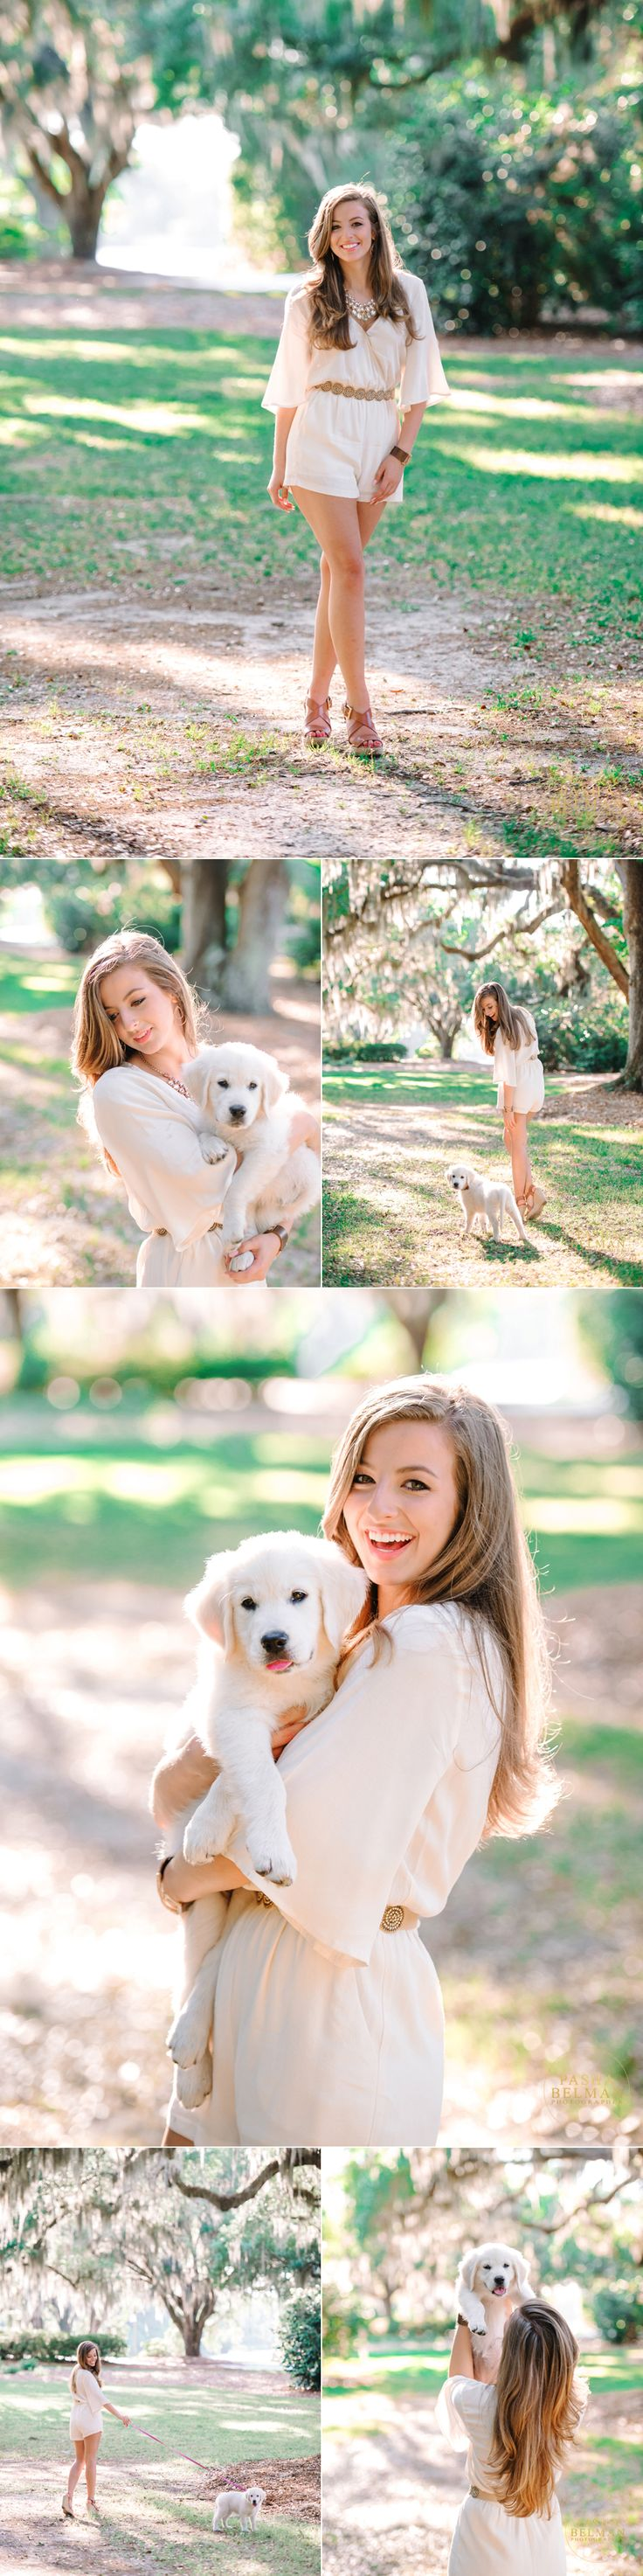 High School Senior Pictures | Senior Pictures and Ideas for Girls | High School Senior Photography with Pets | Cute Dog.  Photography by: Pasha Belman Photography Based in Myrtle Beach, South Carolina 843.333.5301 www.pashabelmanphotography.com